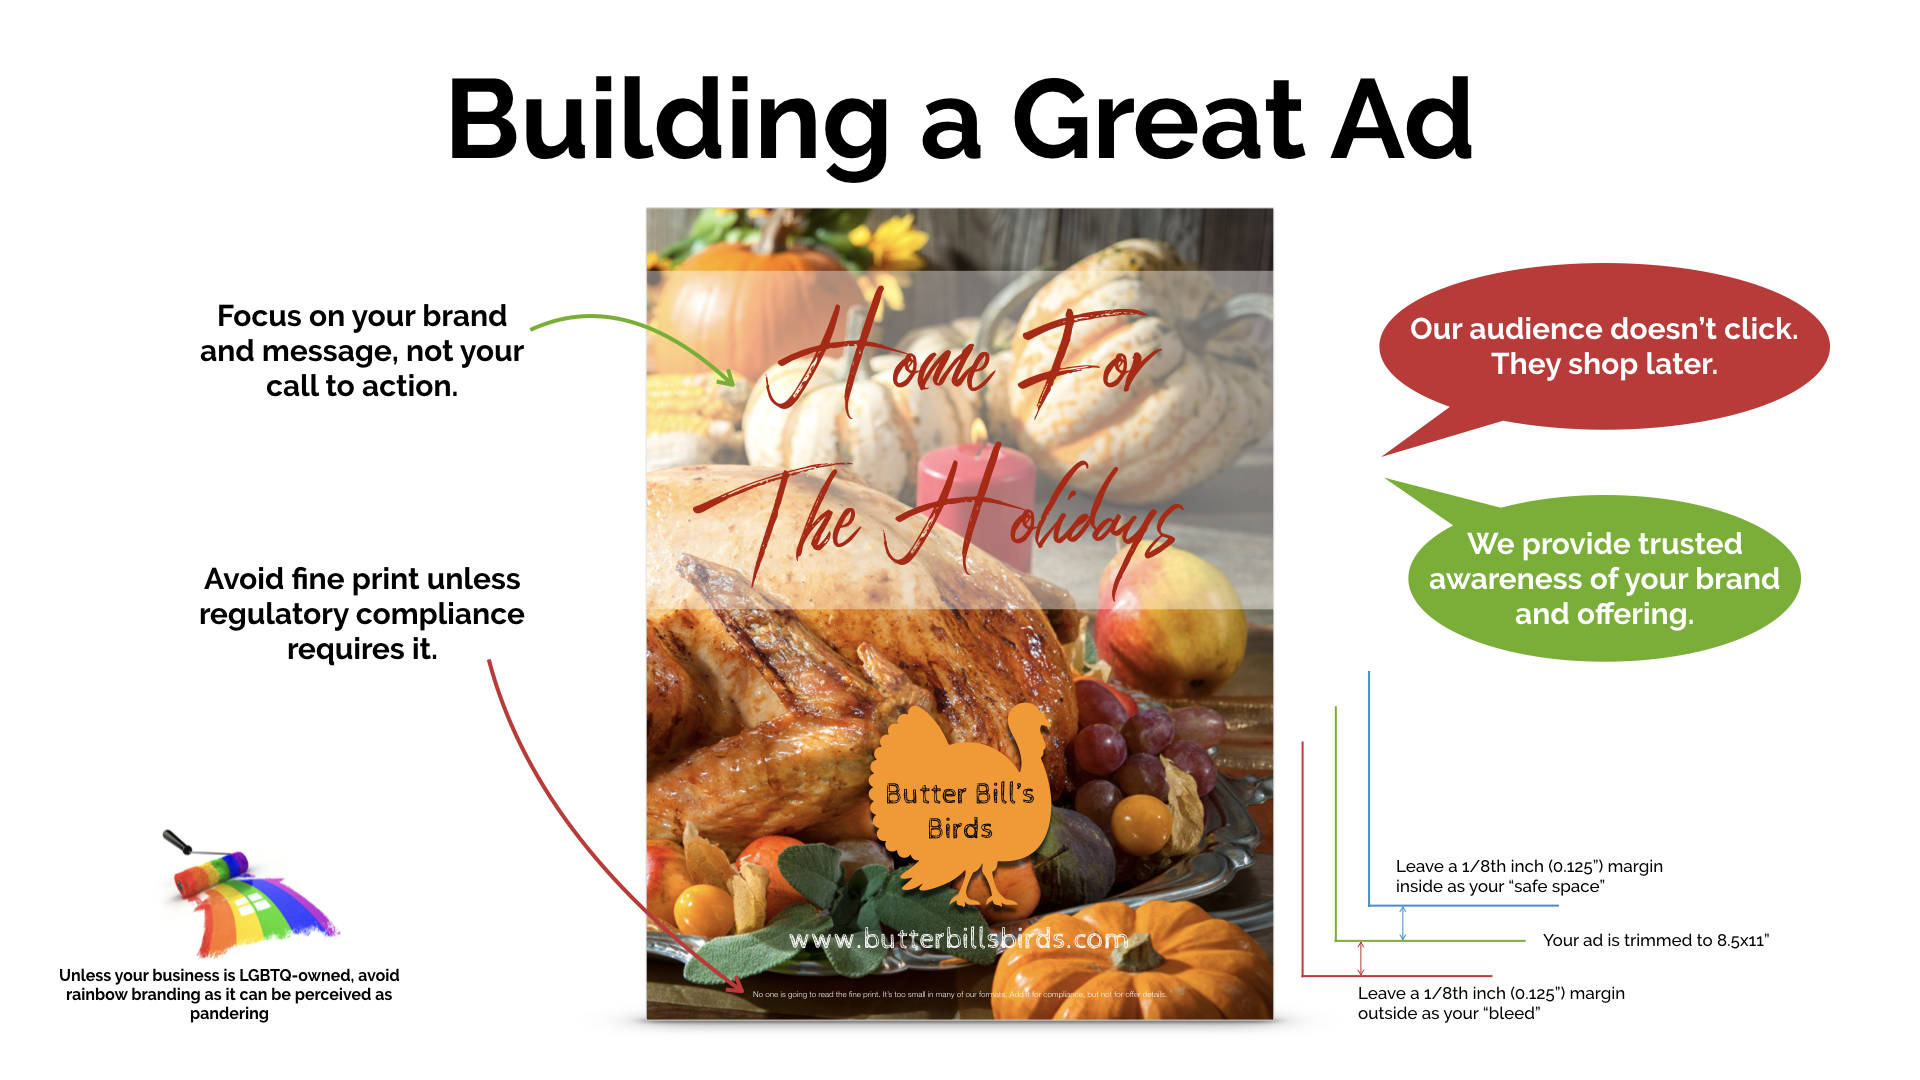 Building a Great Ad